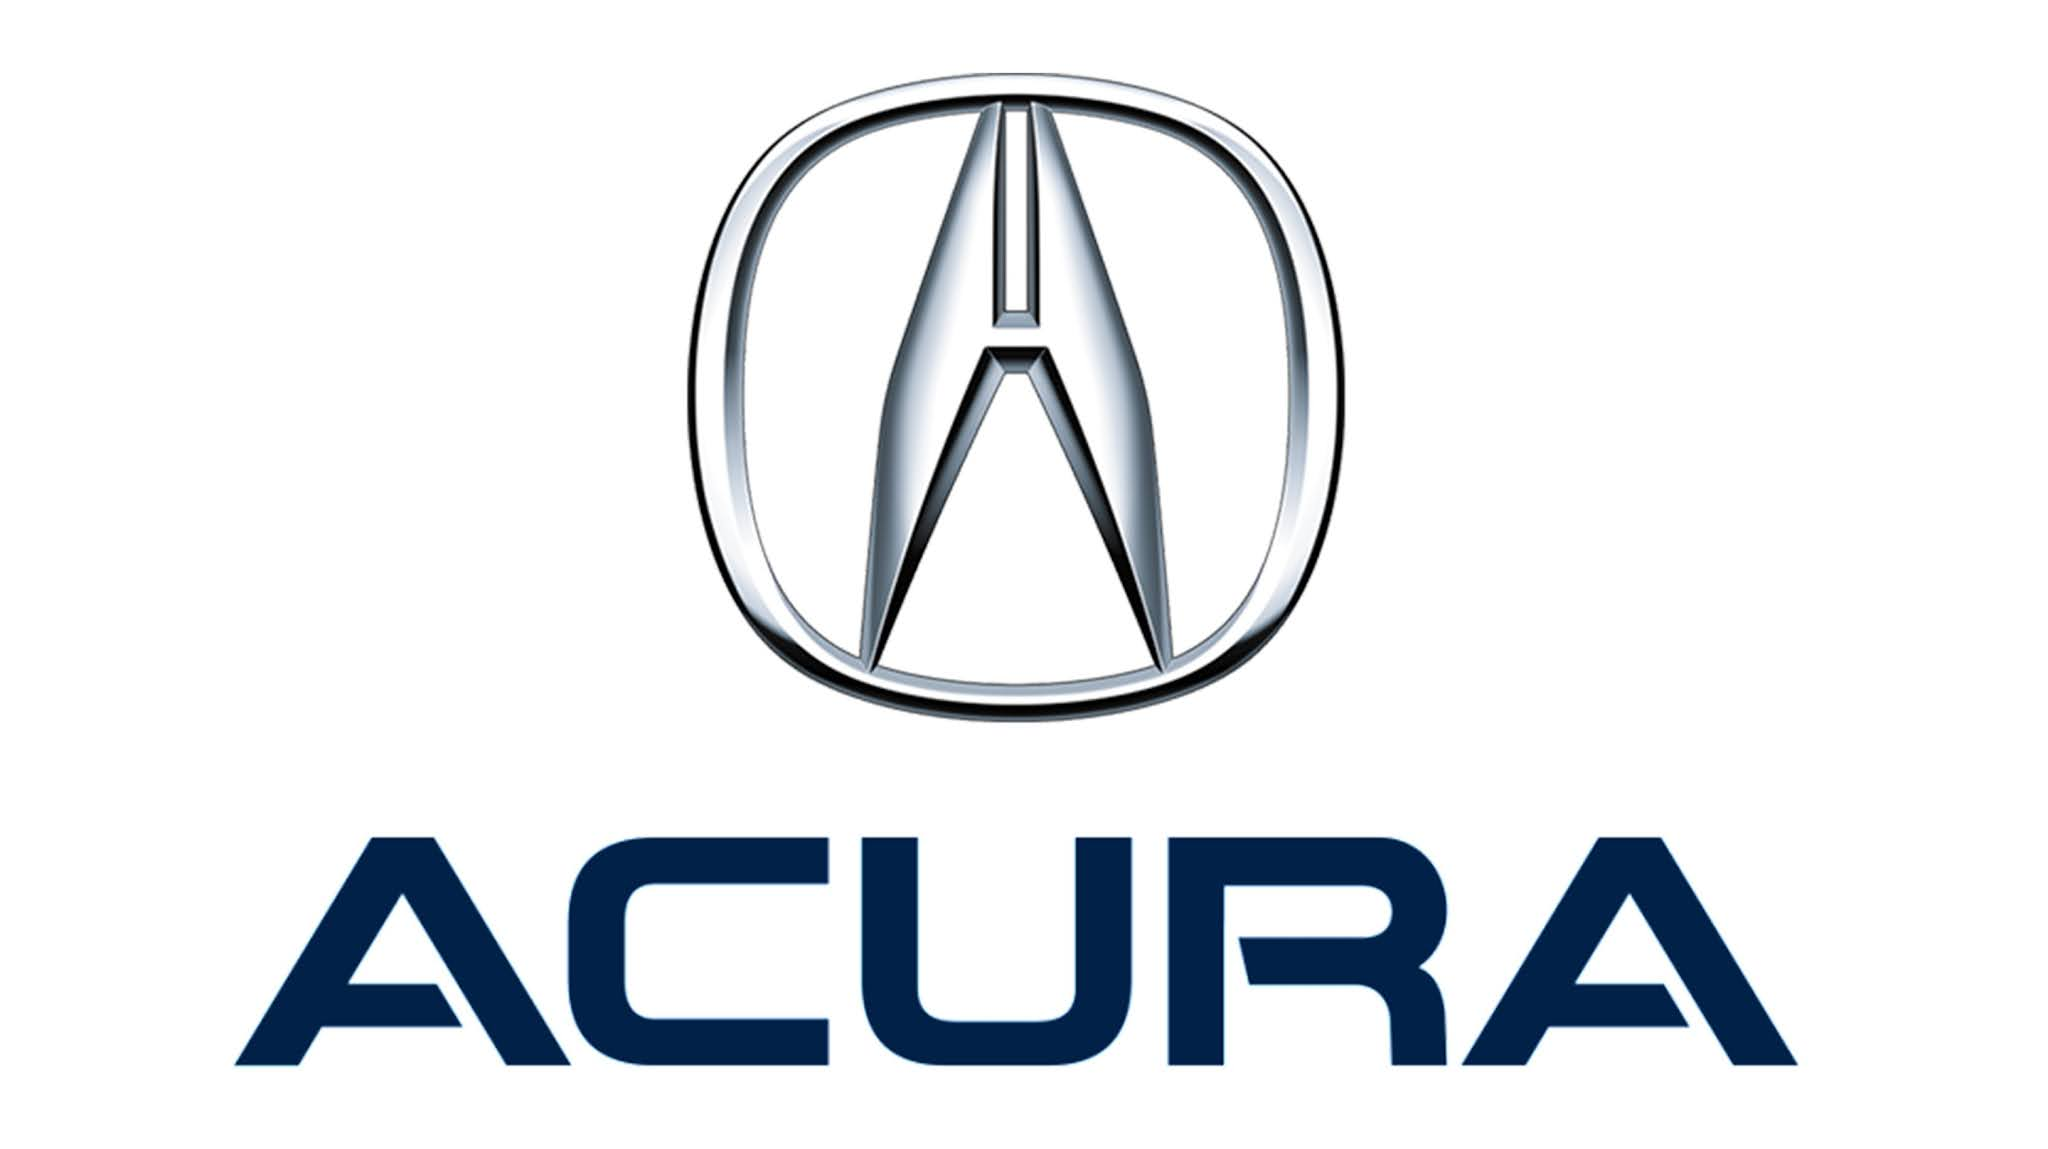 All Acura MDX Fault codes - Error codes starting with P Letter